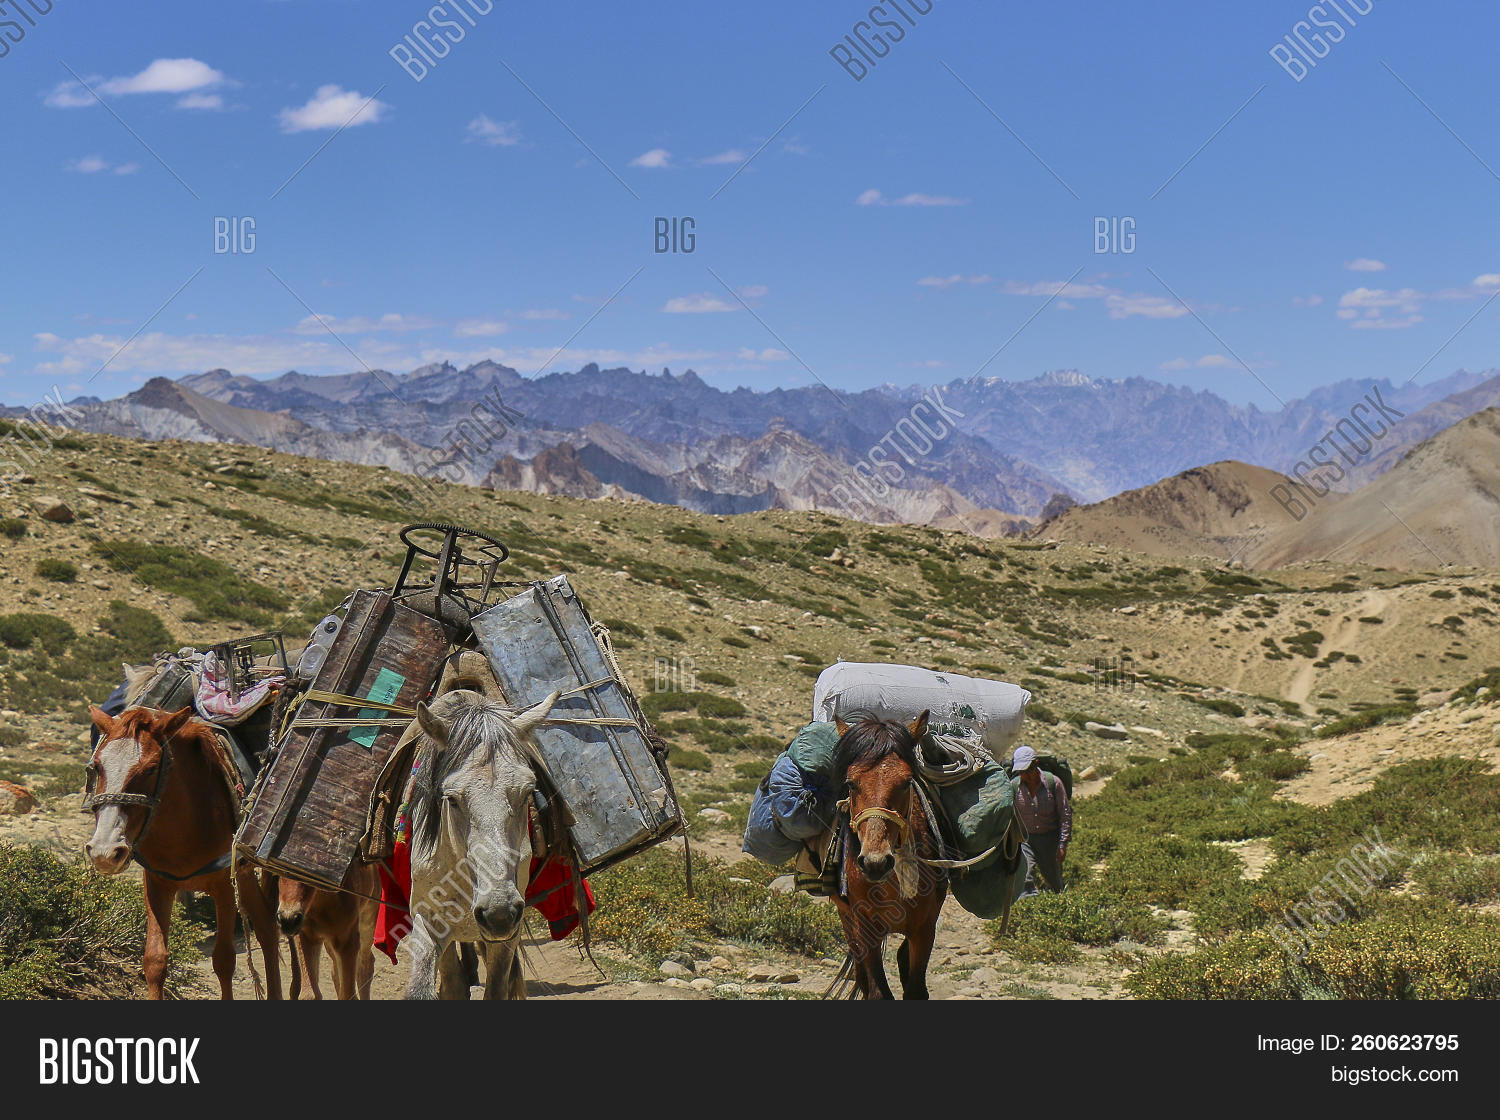 animal,blue,burden,carry,domestic,donkey,group,harness,heavy,high,hike,hiking,himalaya,horse,india,indian,jammu,kangri,kashmir,labour,ladakh,landscape,leh,load,luggage,mammal,markha,mountains,mule,nature,pack,path,pony,remote,rural,saddle,snow,stok,stubborn,summer,tibet,tourism,transport,transportation,travel,trek,trekking,valley,wild